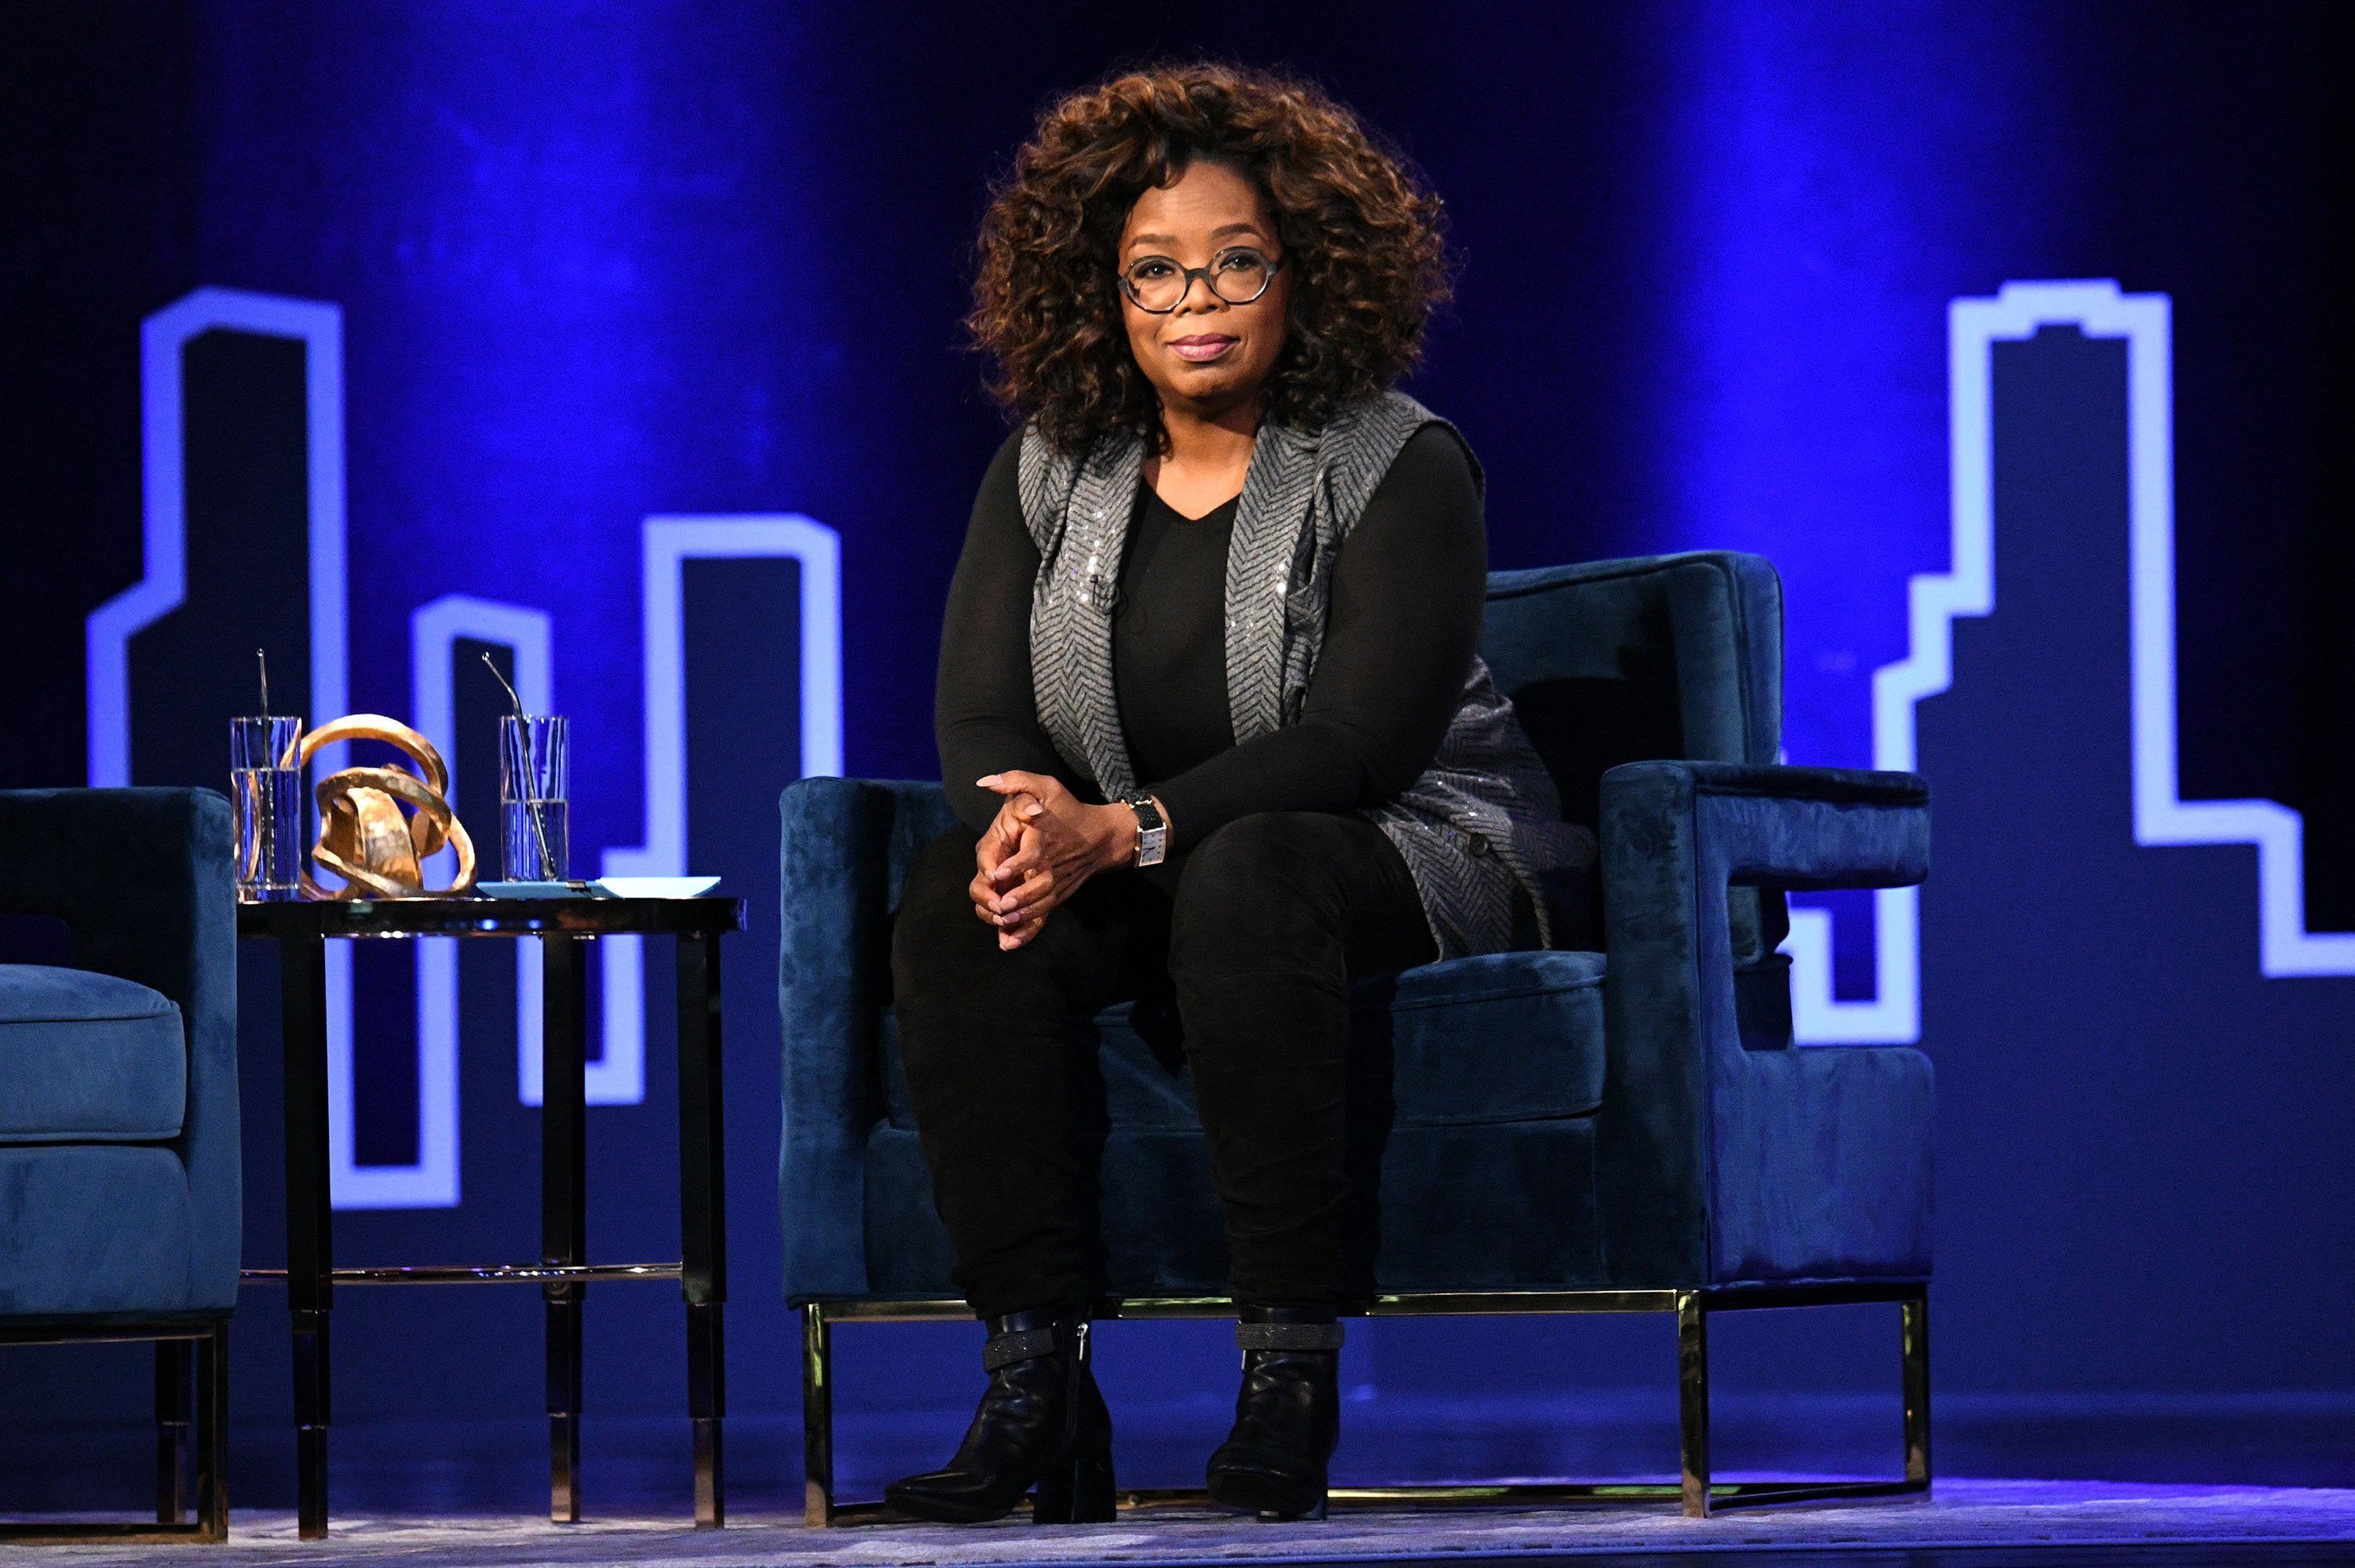 Oprah Winfrey during Oprah's SuperSoul Conversations on Feb. 05, 2019 in New York City | Photo: Getty Images